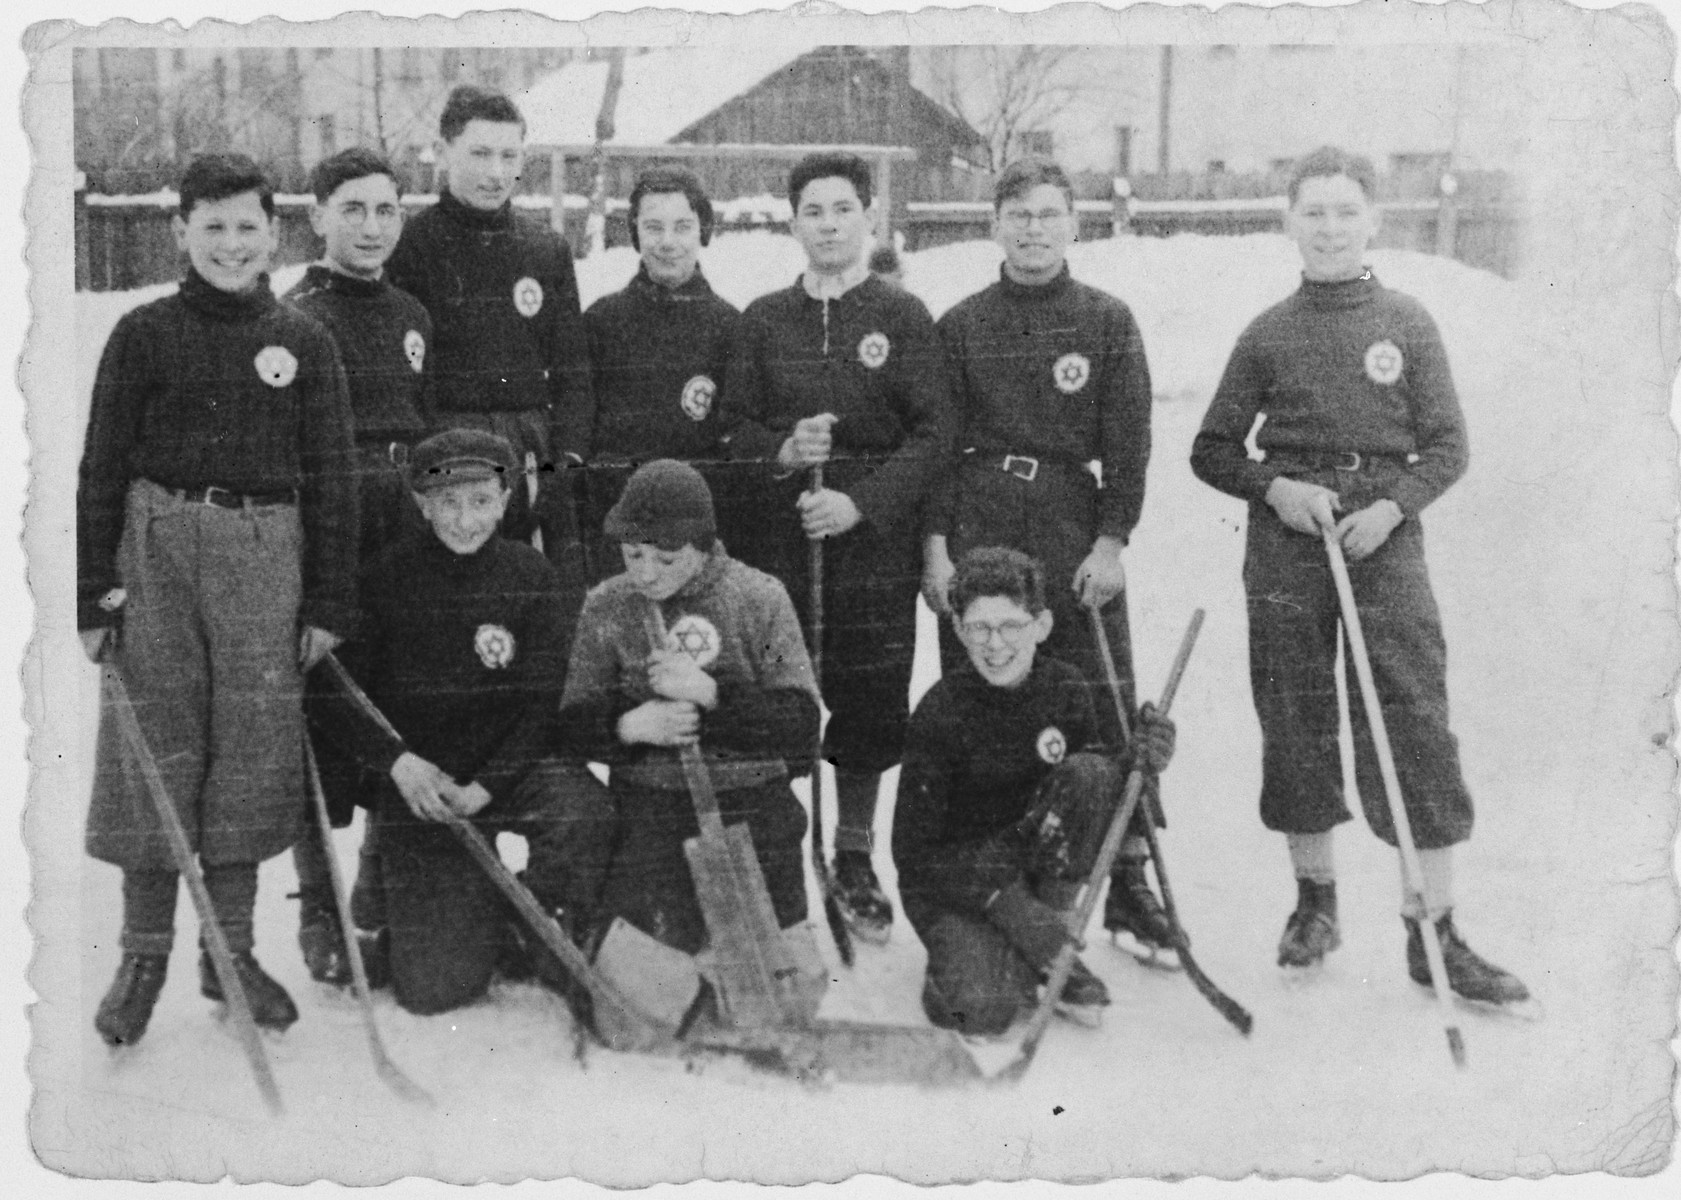 Members of a Jewish ice hockey team wearing stars of David on their shirts pose in the snow.